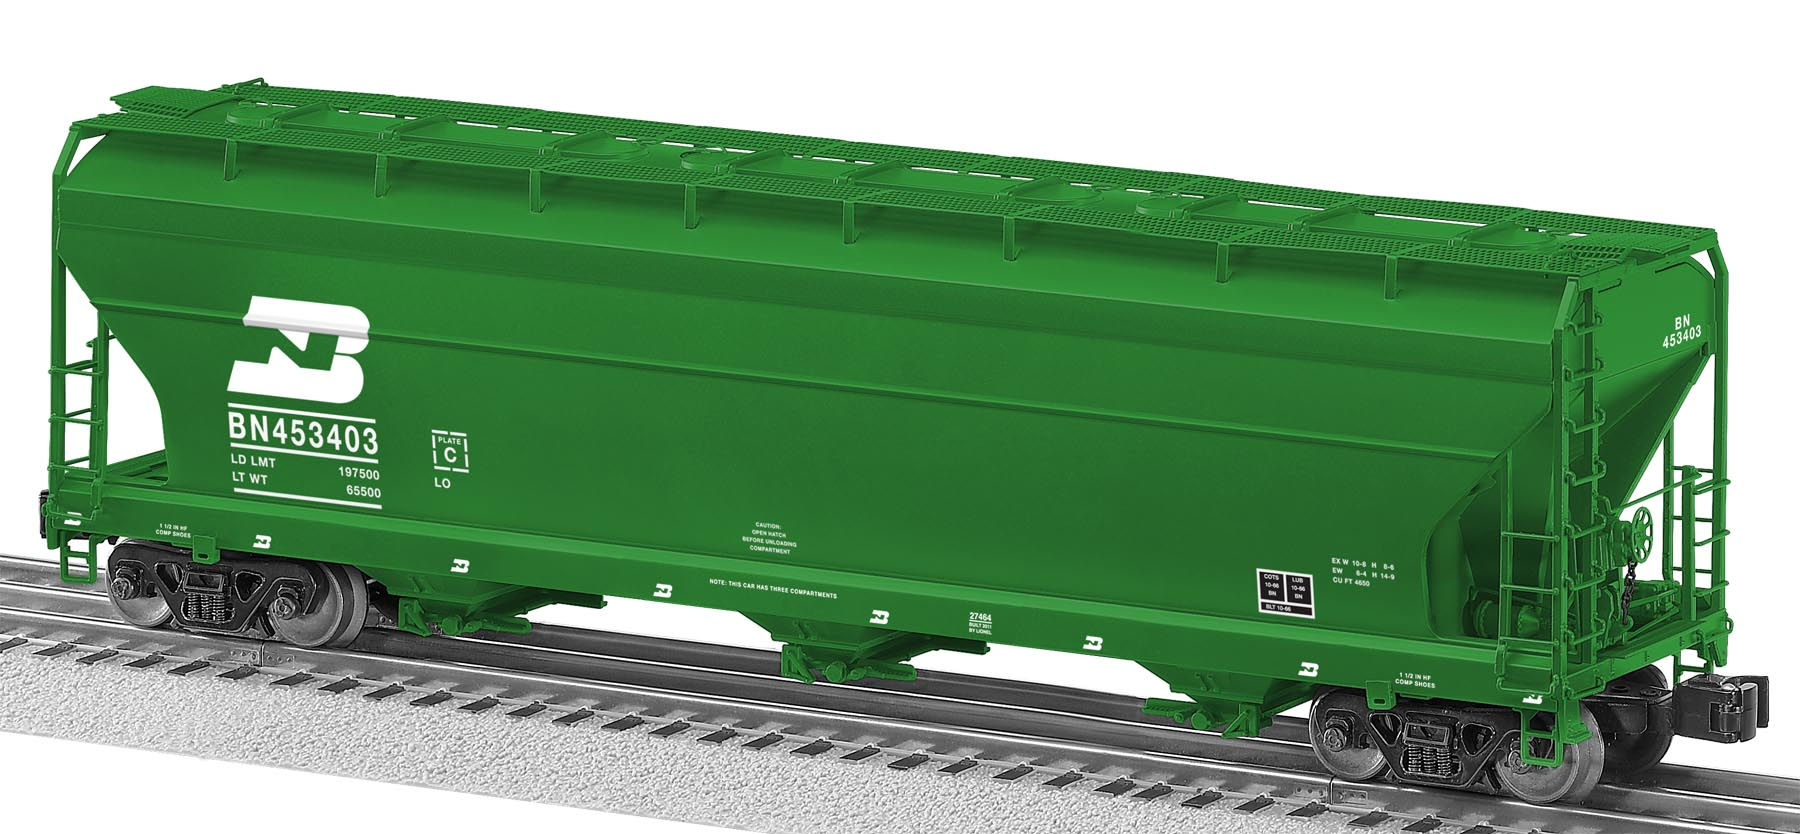 Toys For Trucks Green Bay : O scale freight car guide ton covered hoppers